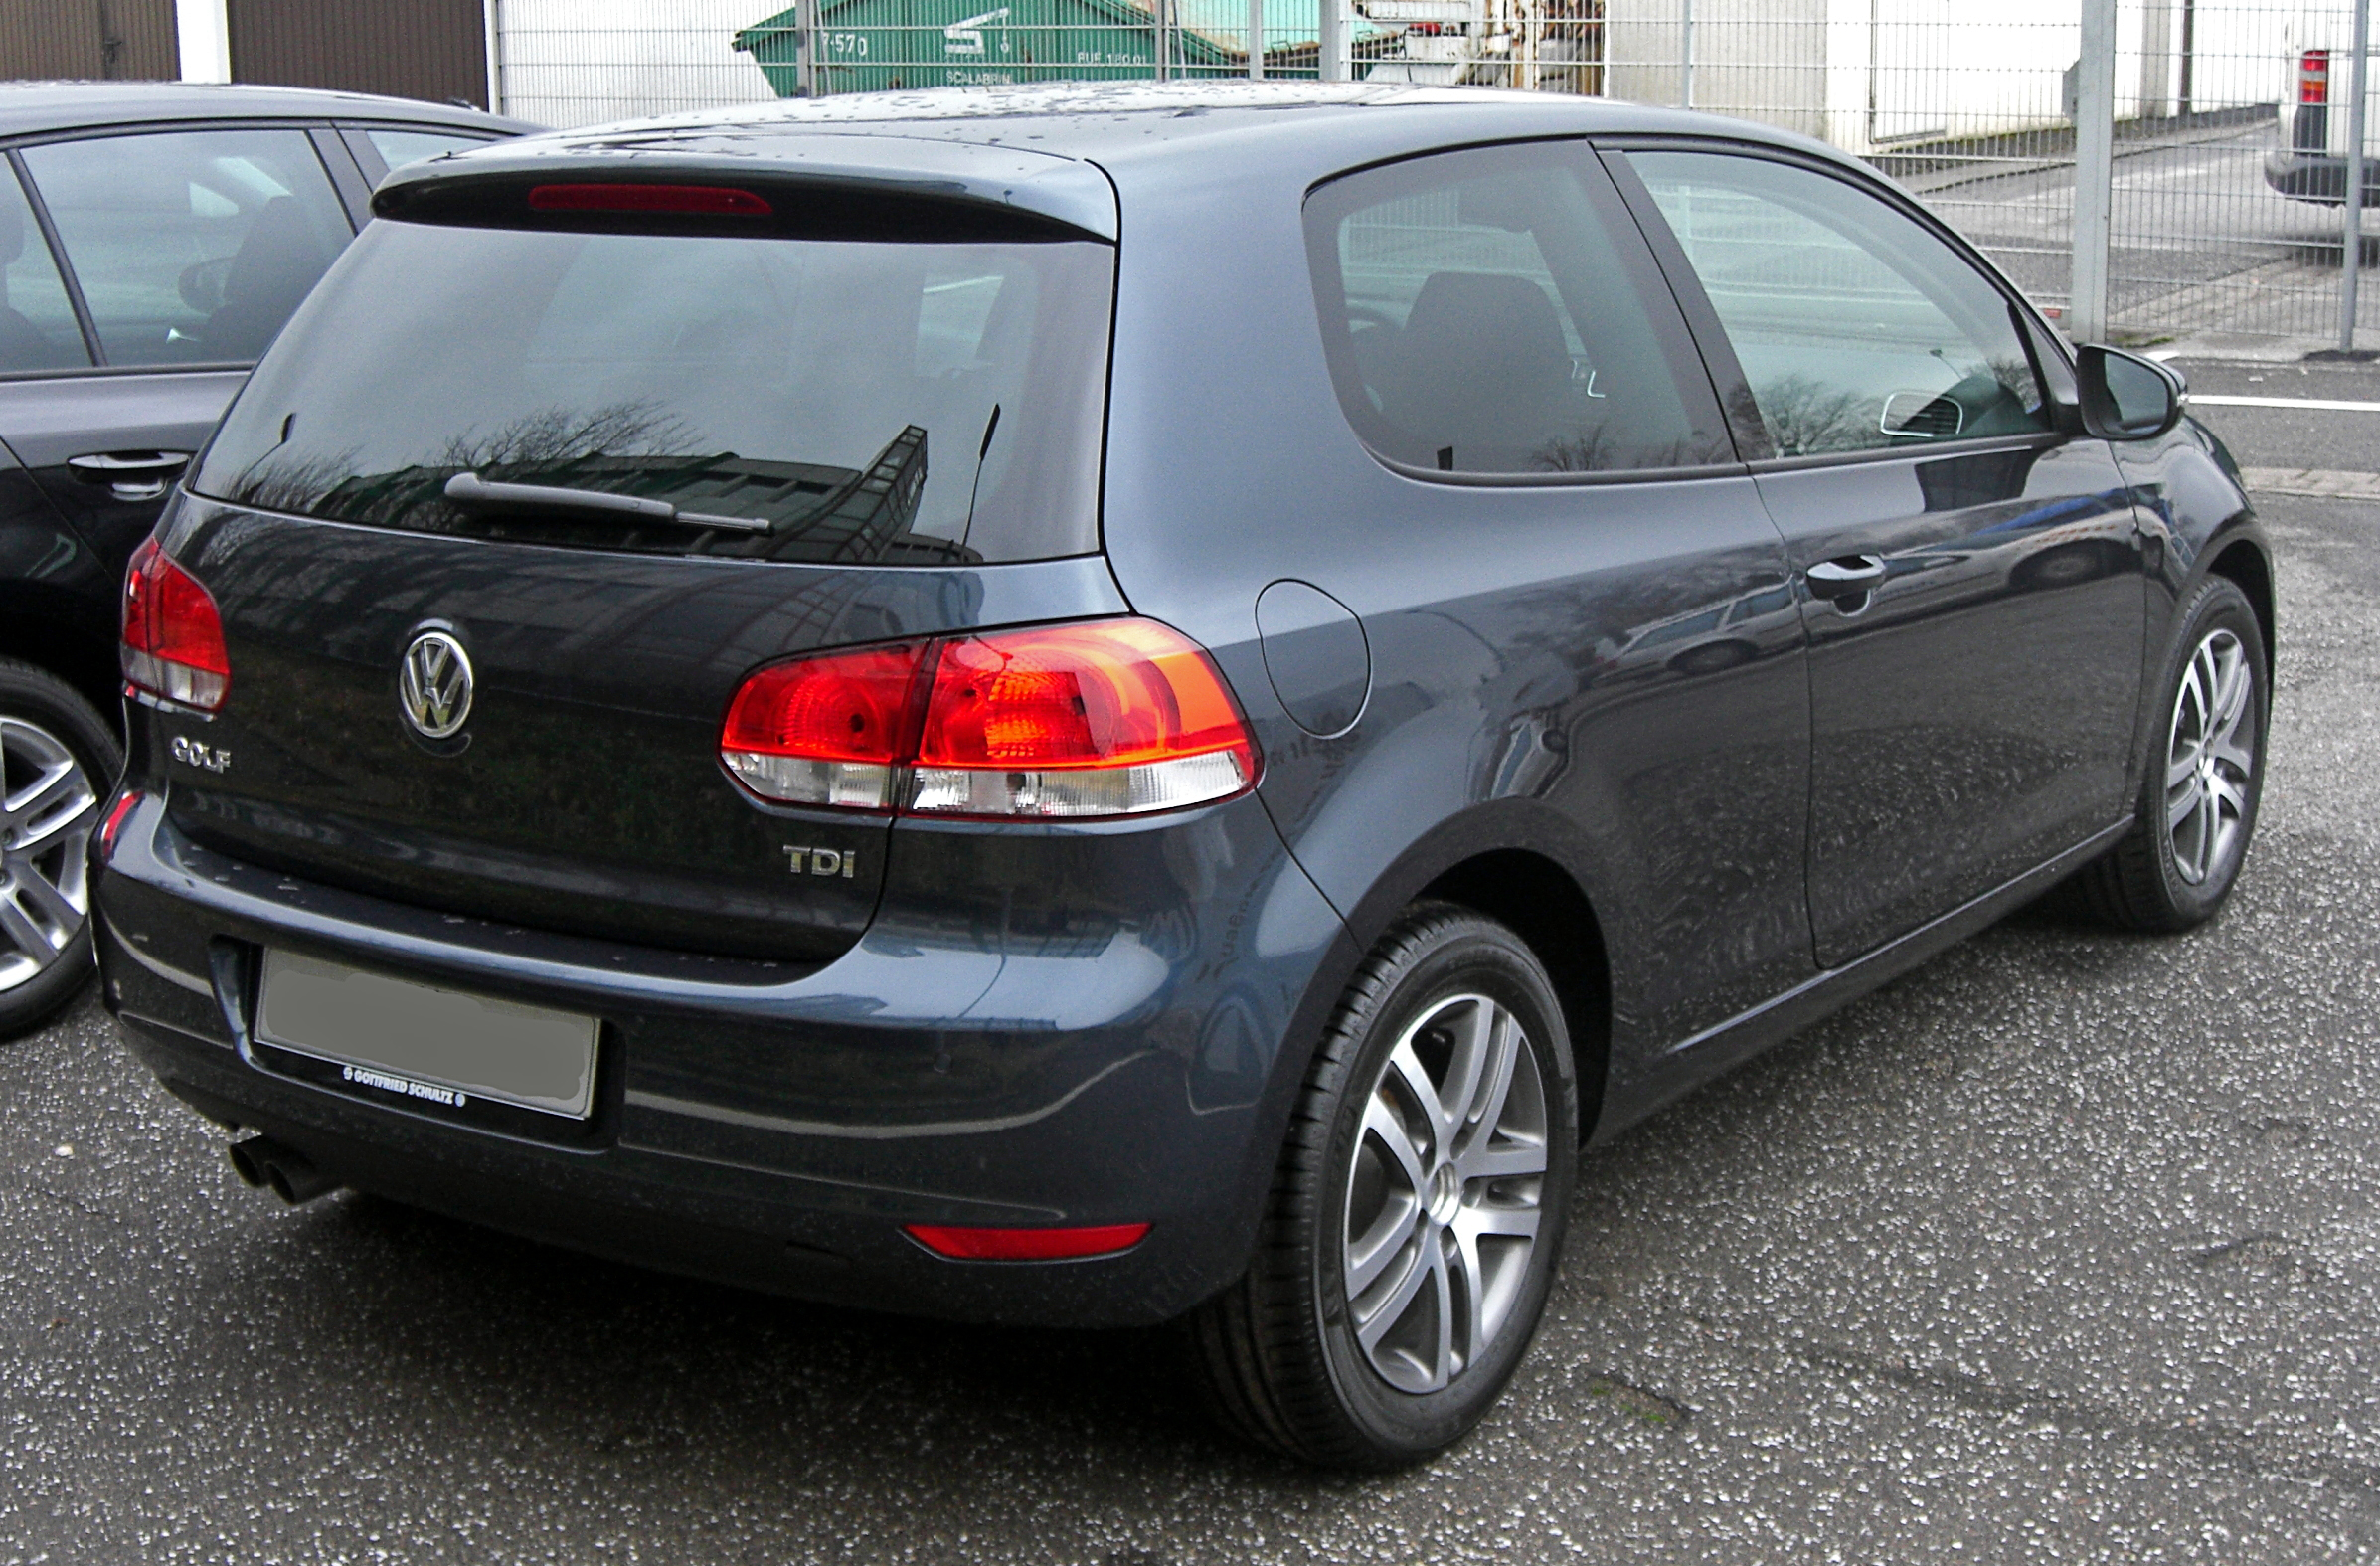 file vw golf vi rear 1 jpg wikimedia commons. Black Bedroom Furniture Sets. Home Design Ideas